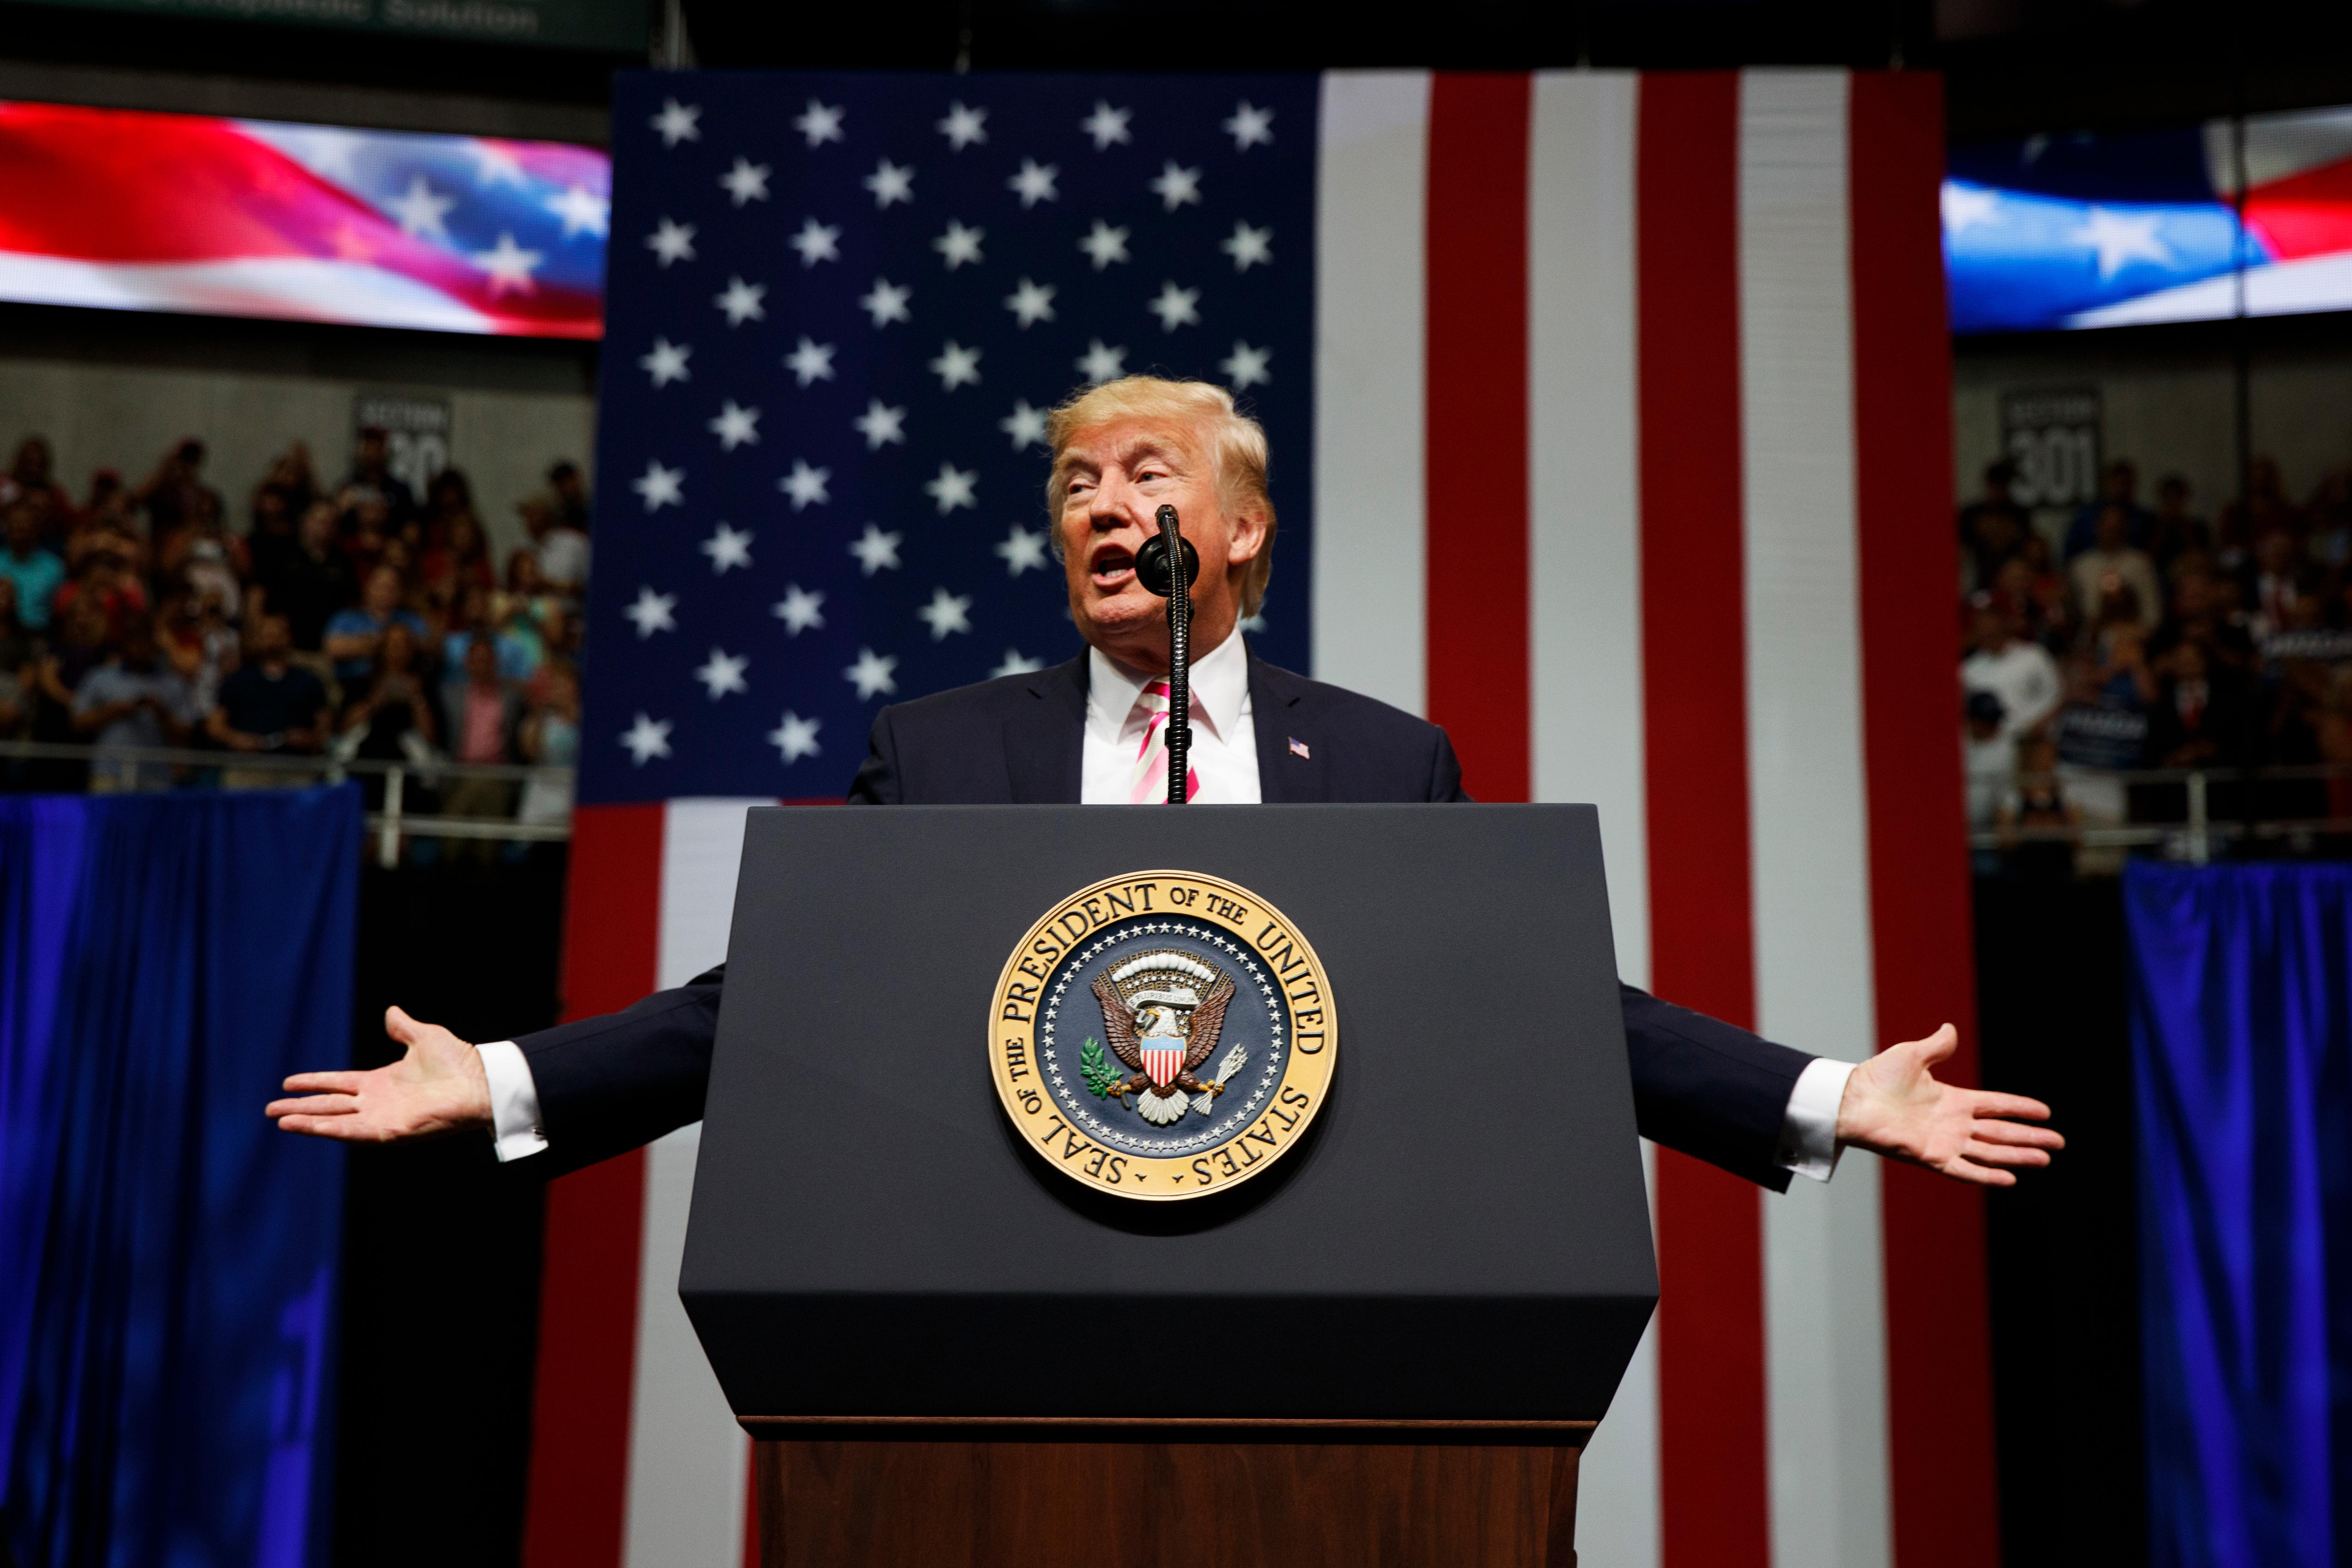 FILE - In this Friday, Sept. 22, 2017, file photo, President Donald Trump speaks at a campaign rally for Sen. Luther Strange, R-Ala., in Huntsville, Ala. Trump is expected to announce new restrictions on travel to the U.S. as his ban on visitors from six Muslim-majority countries sunsets Sunday, Sept. 24, 90 days after it went into effect. (AP Photo/Evan Vucci, File)